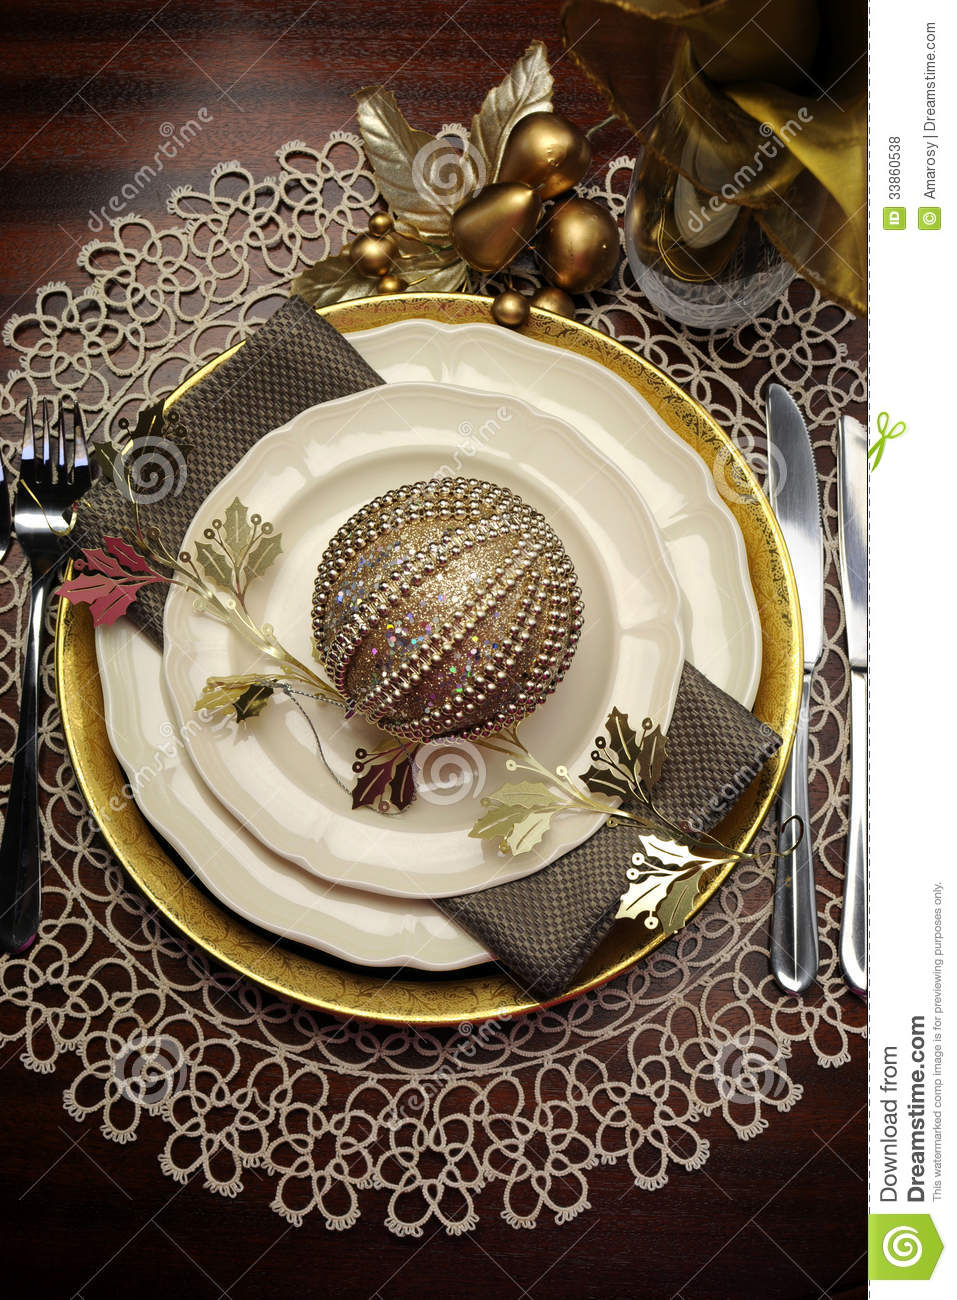 HD wallpapers dining table center decorations